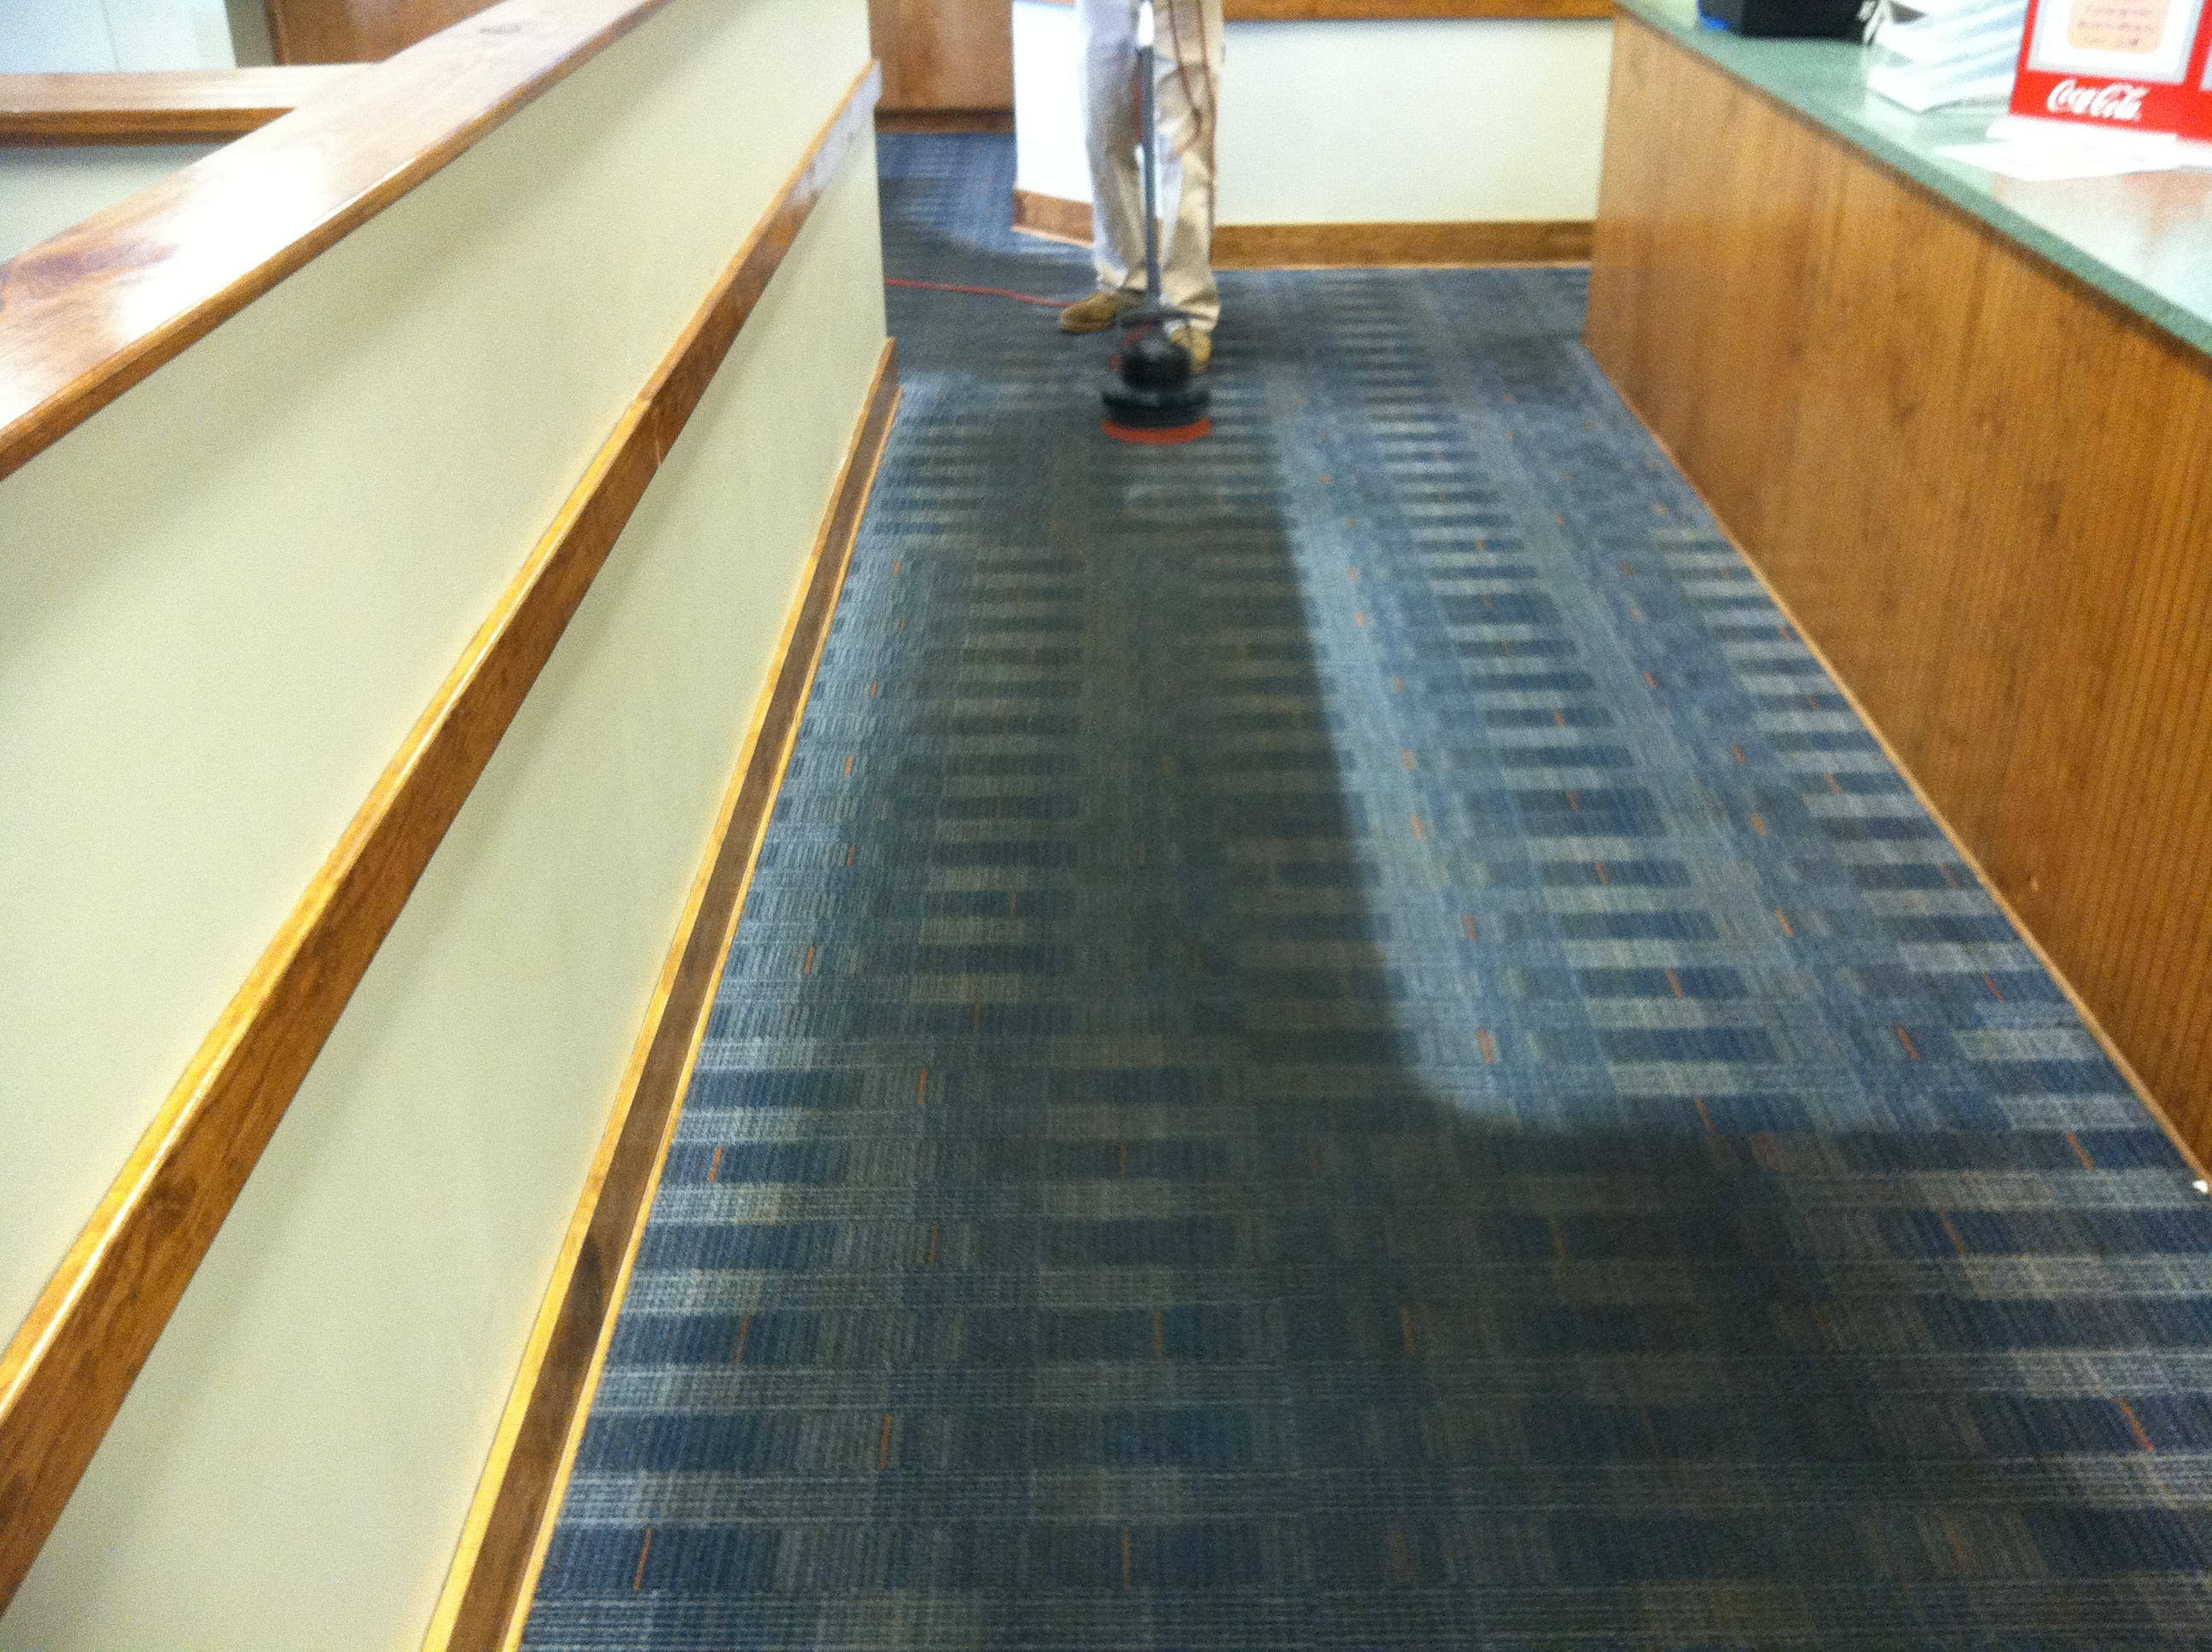 Free Commercial Floor Cleaning Estimates